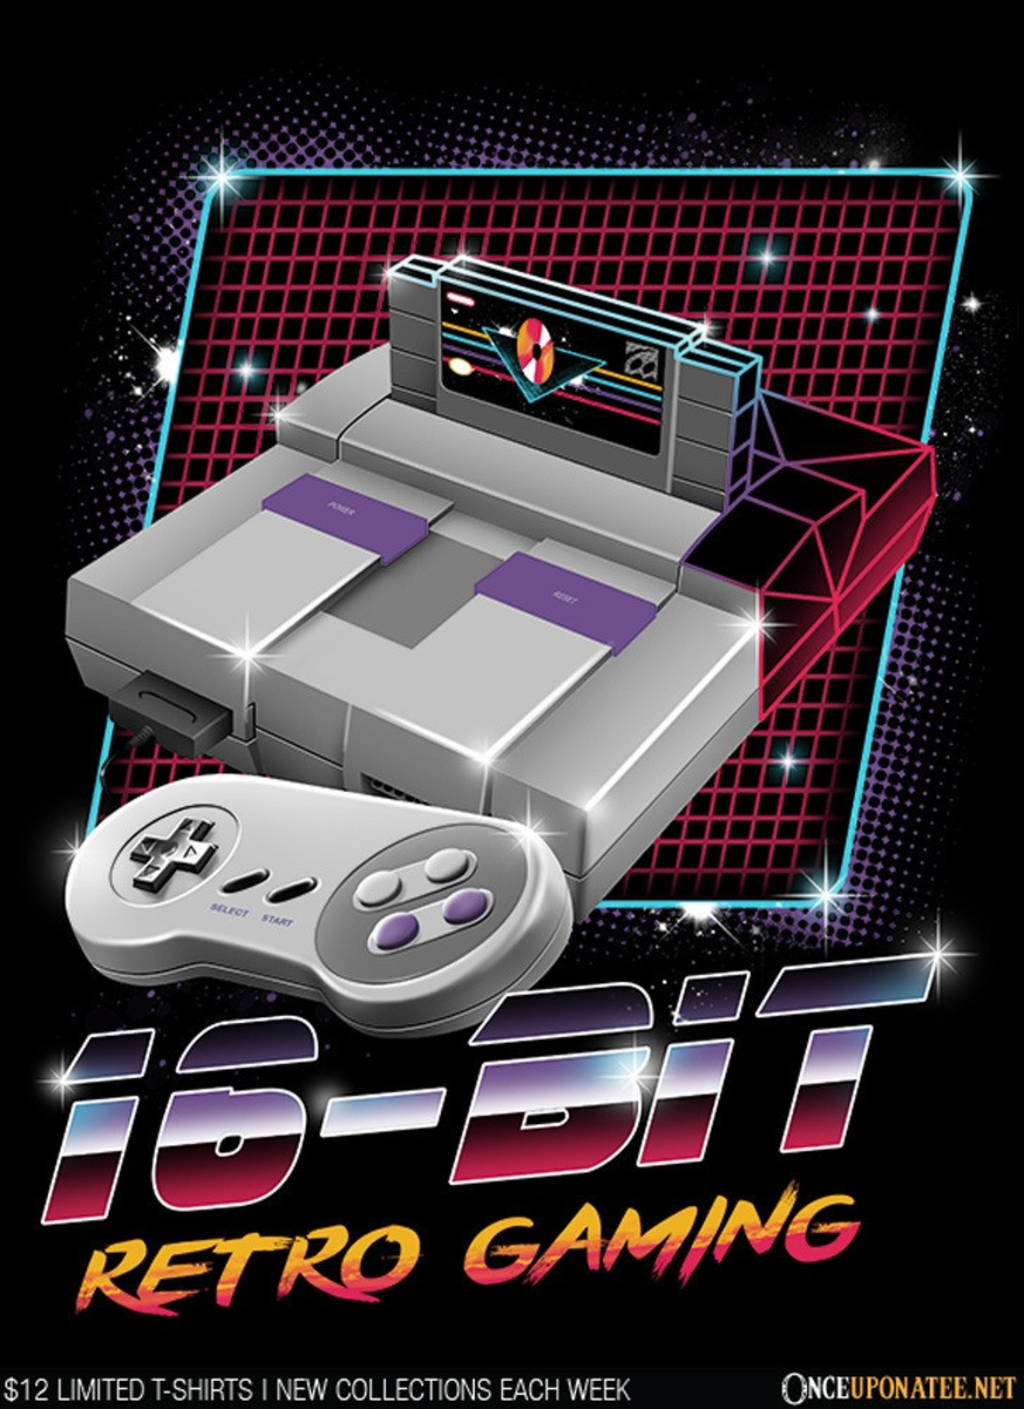 Once Upon a Tee: 16-Bit Retro Gaming